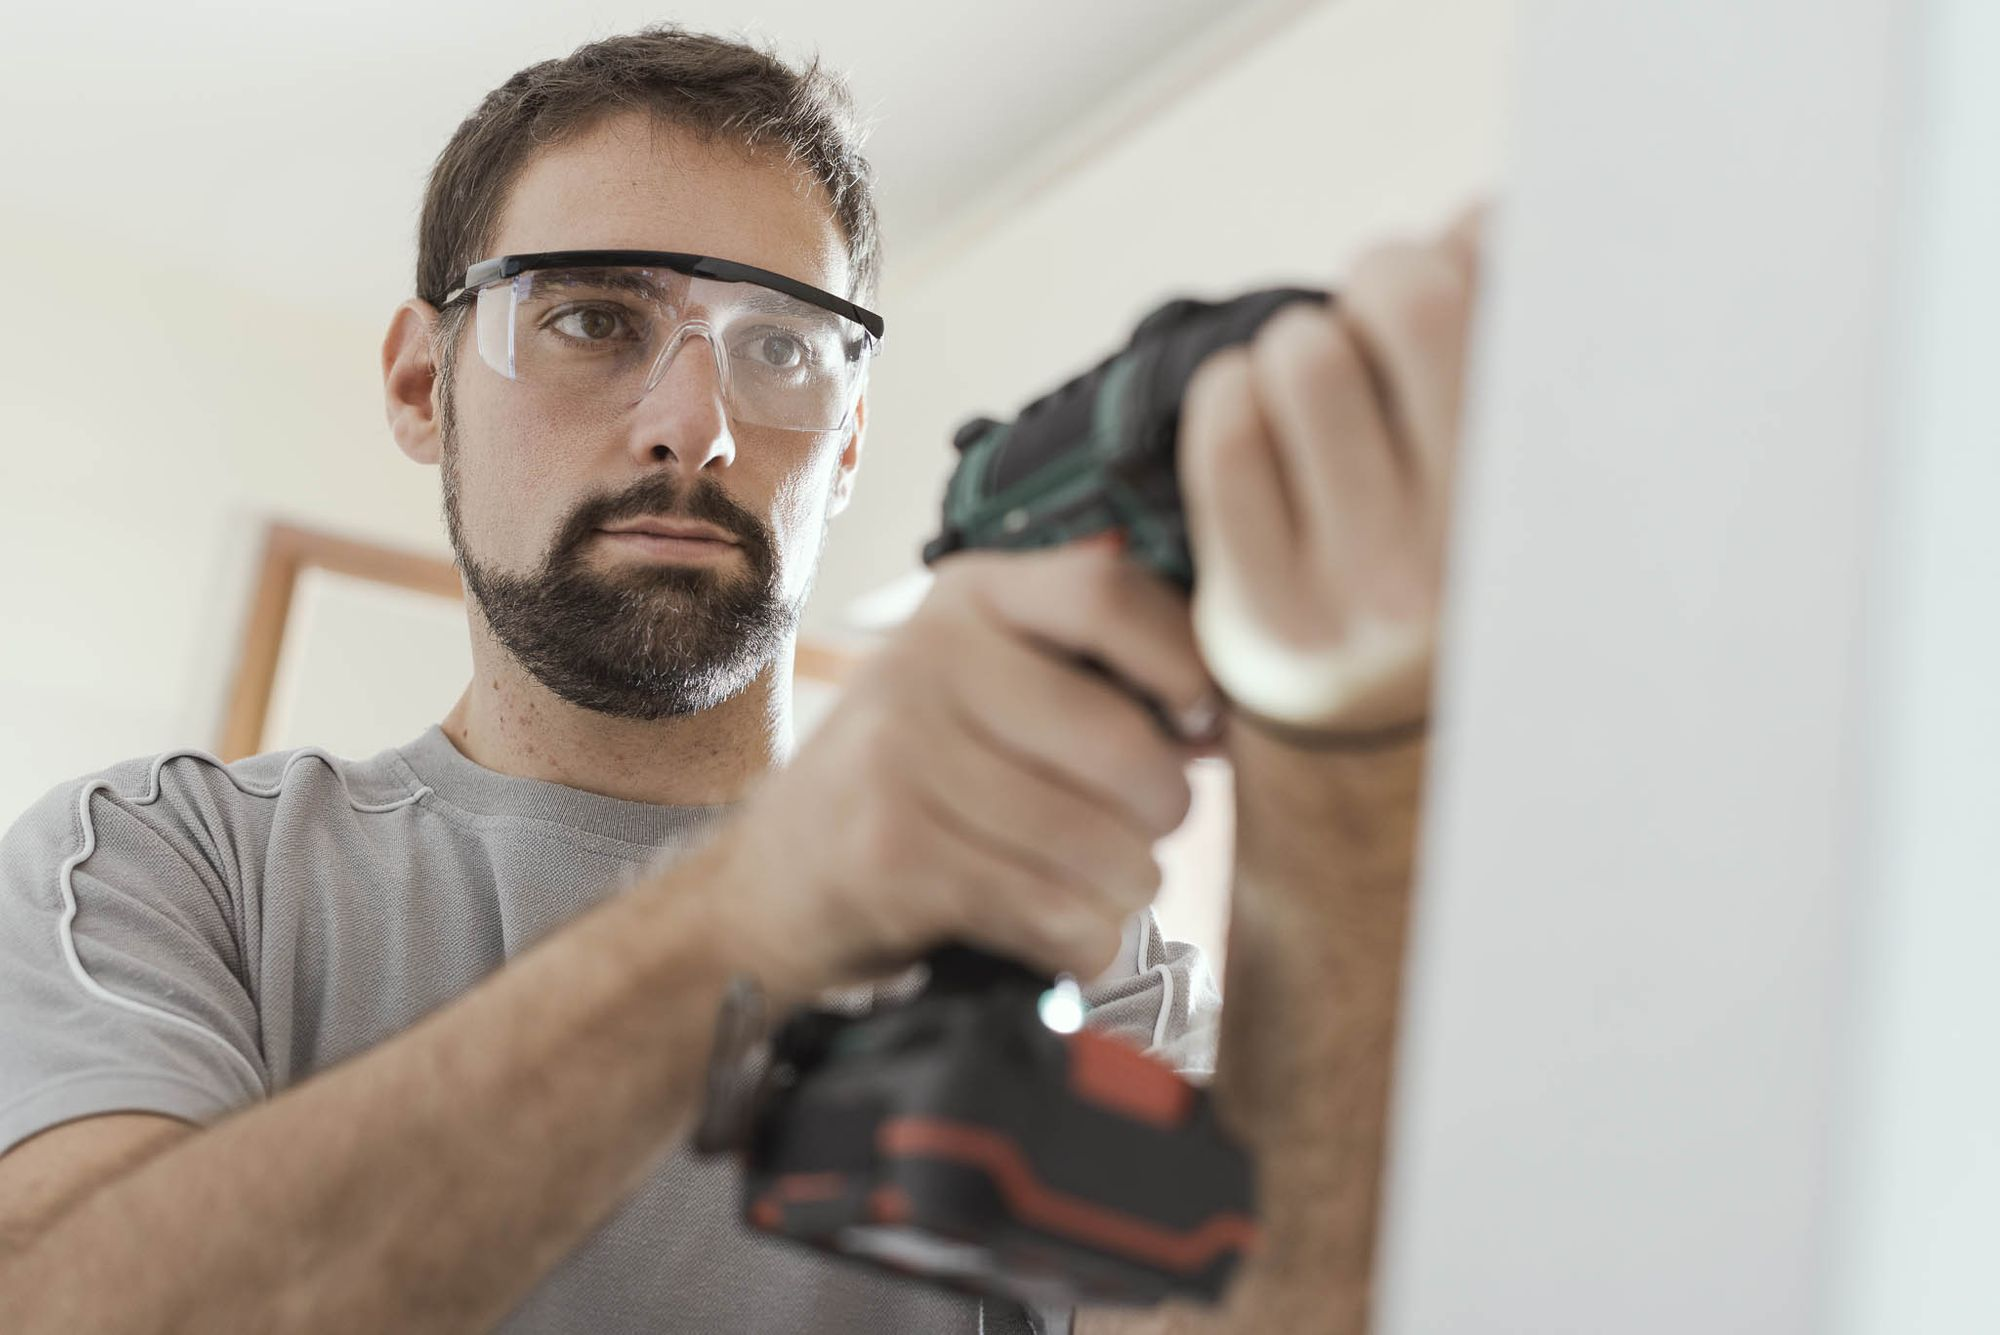 A man wearing protective goggles happily uses an electric drill to make the holes necessary to install a tablet mount.